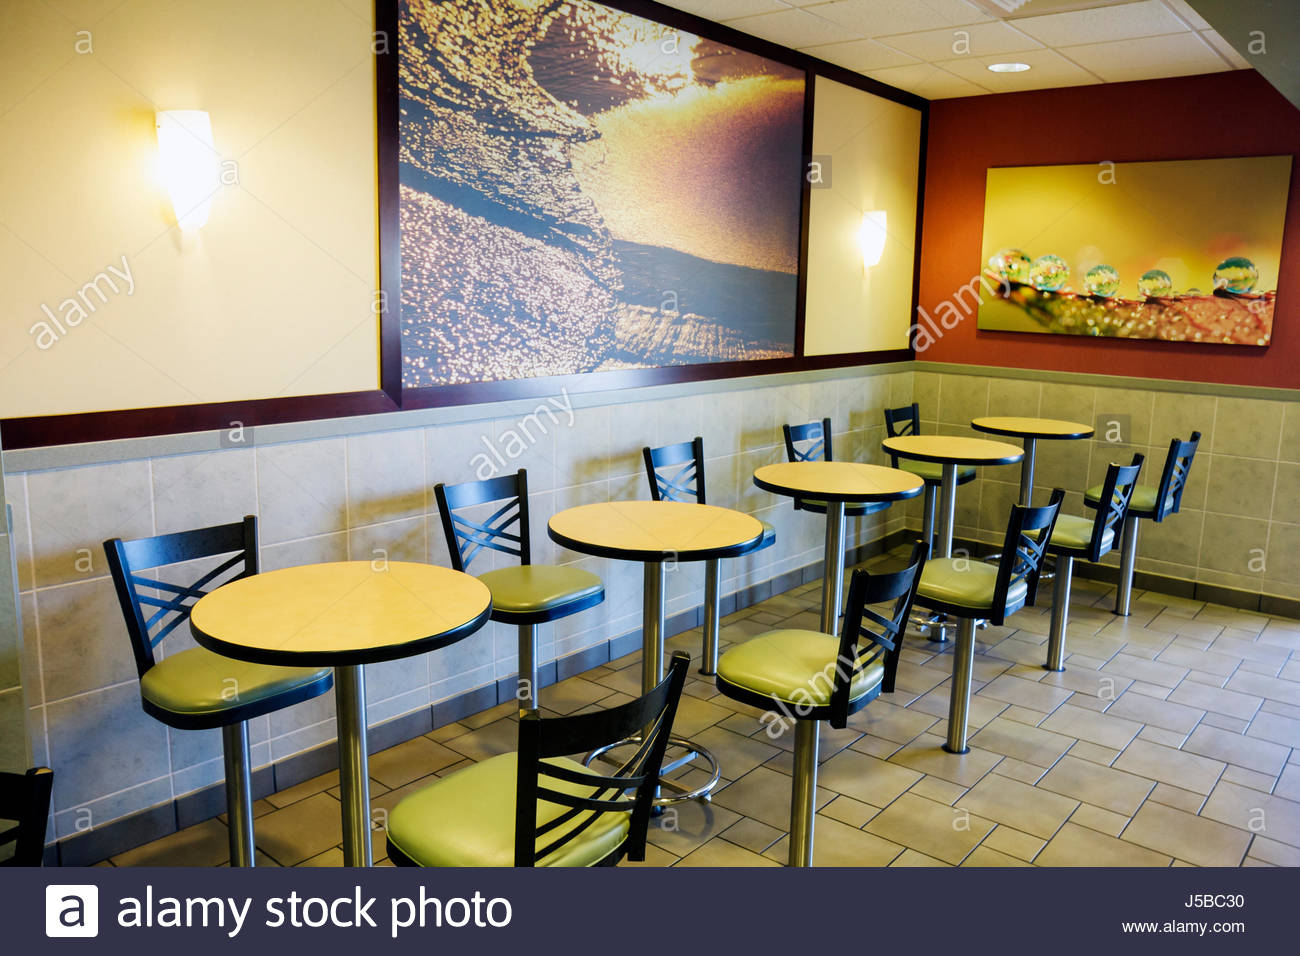 Florida giove mcdonald 39 s mcdonalds un ristorante fast food for Arredamento per fast food